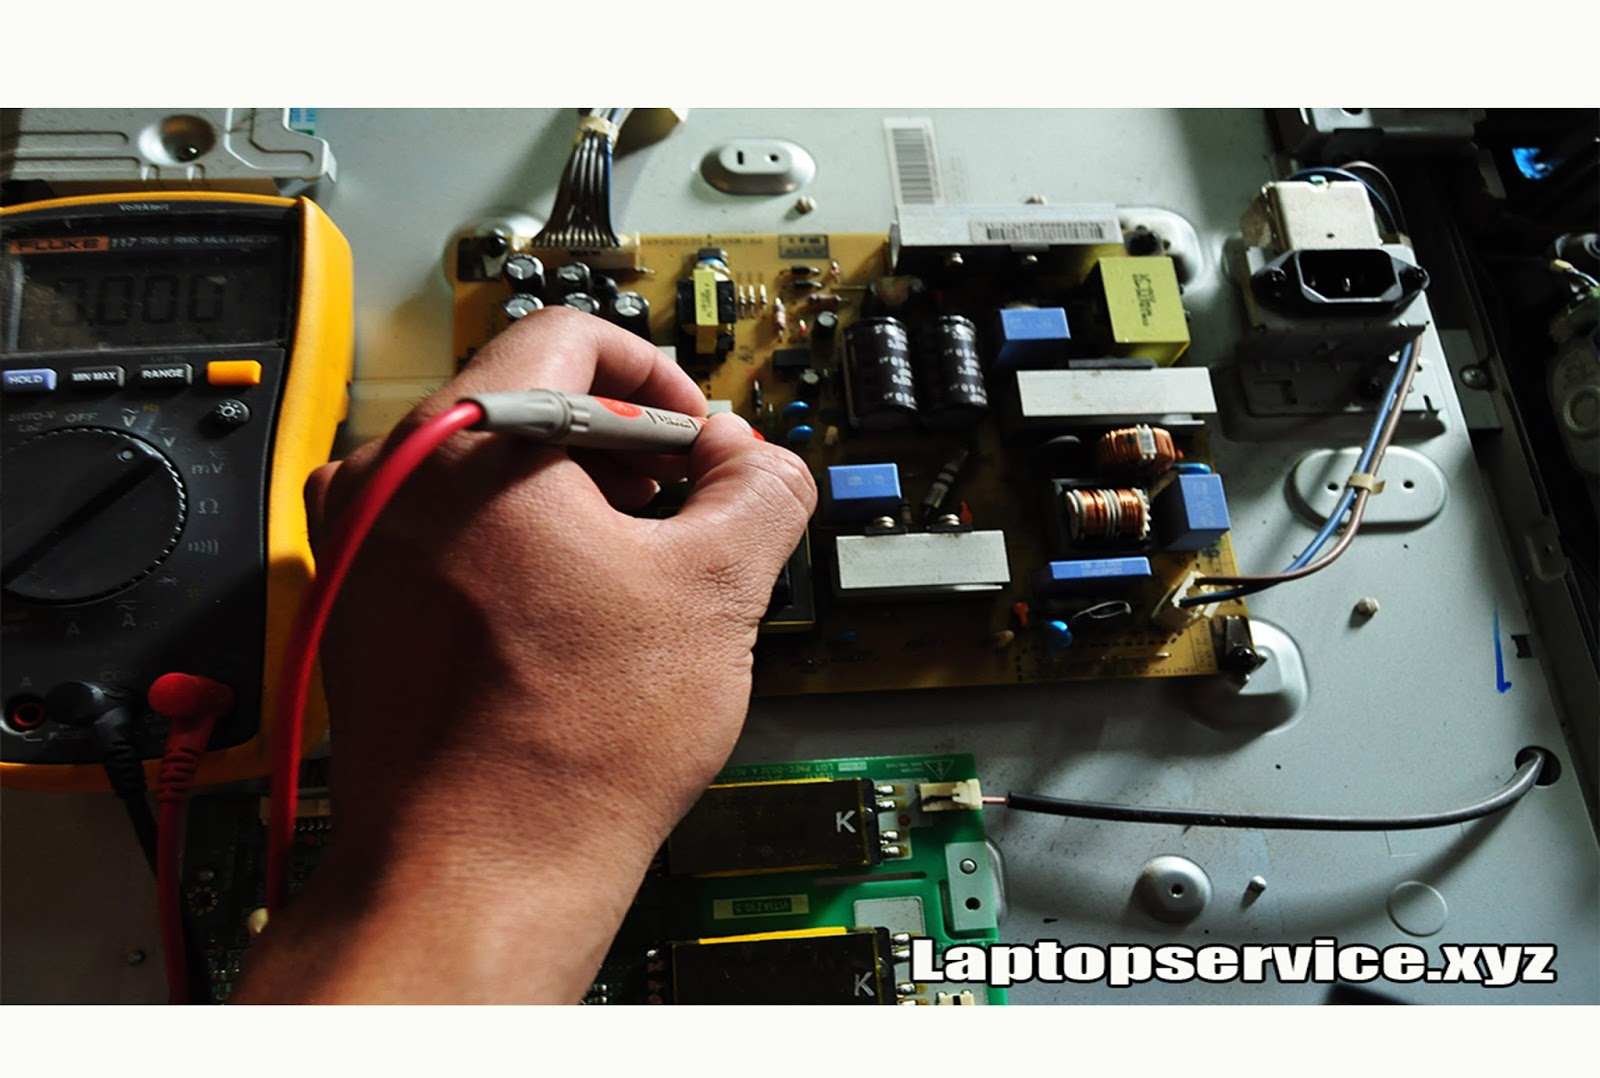 Jasa service lcd led tv di kediri